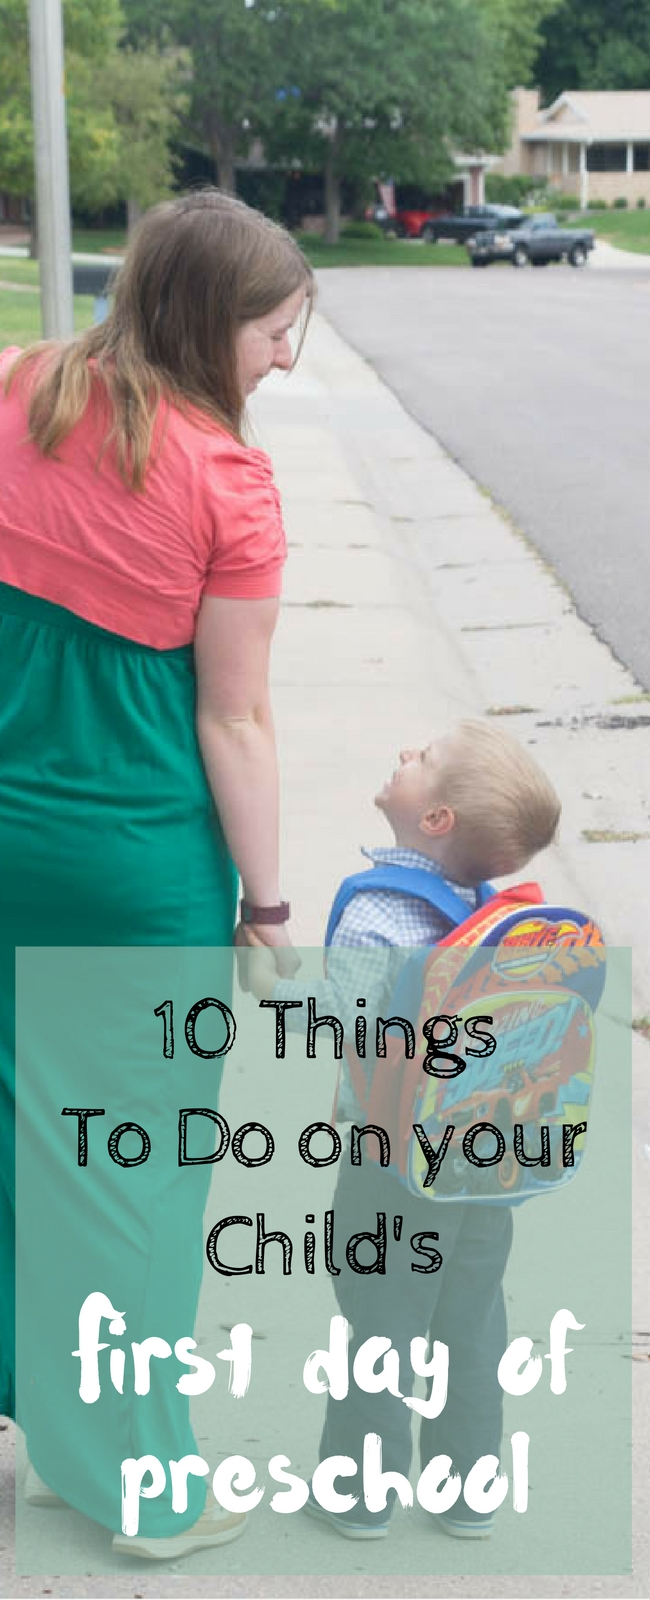 10 Things to do On your Child's First Day of Preschool via @clarkscondensed